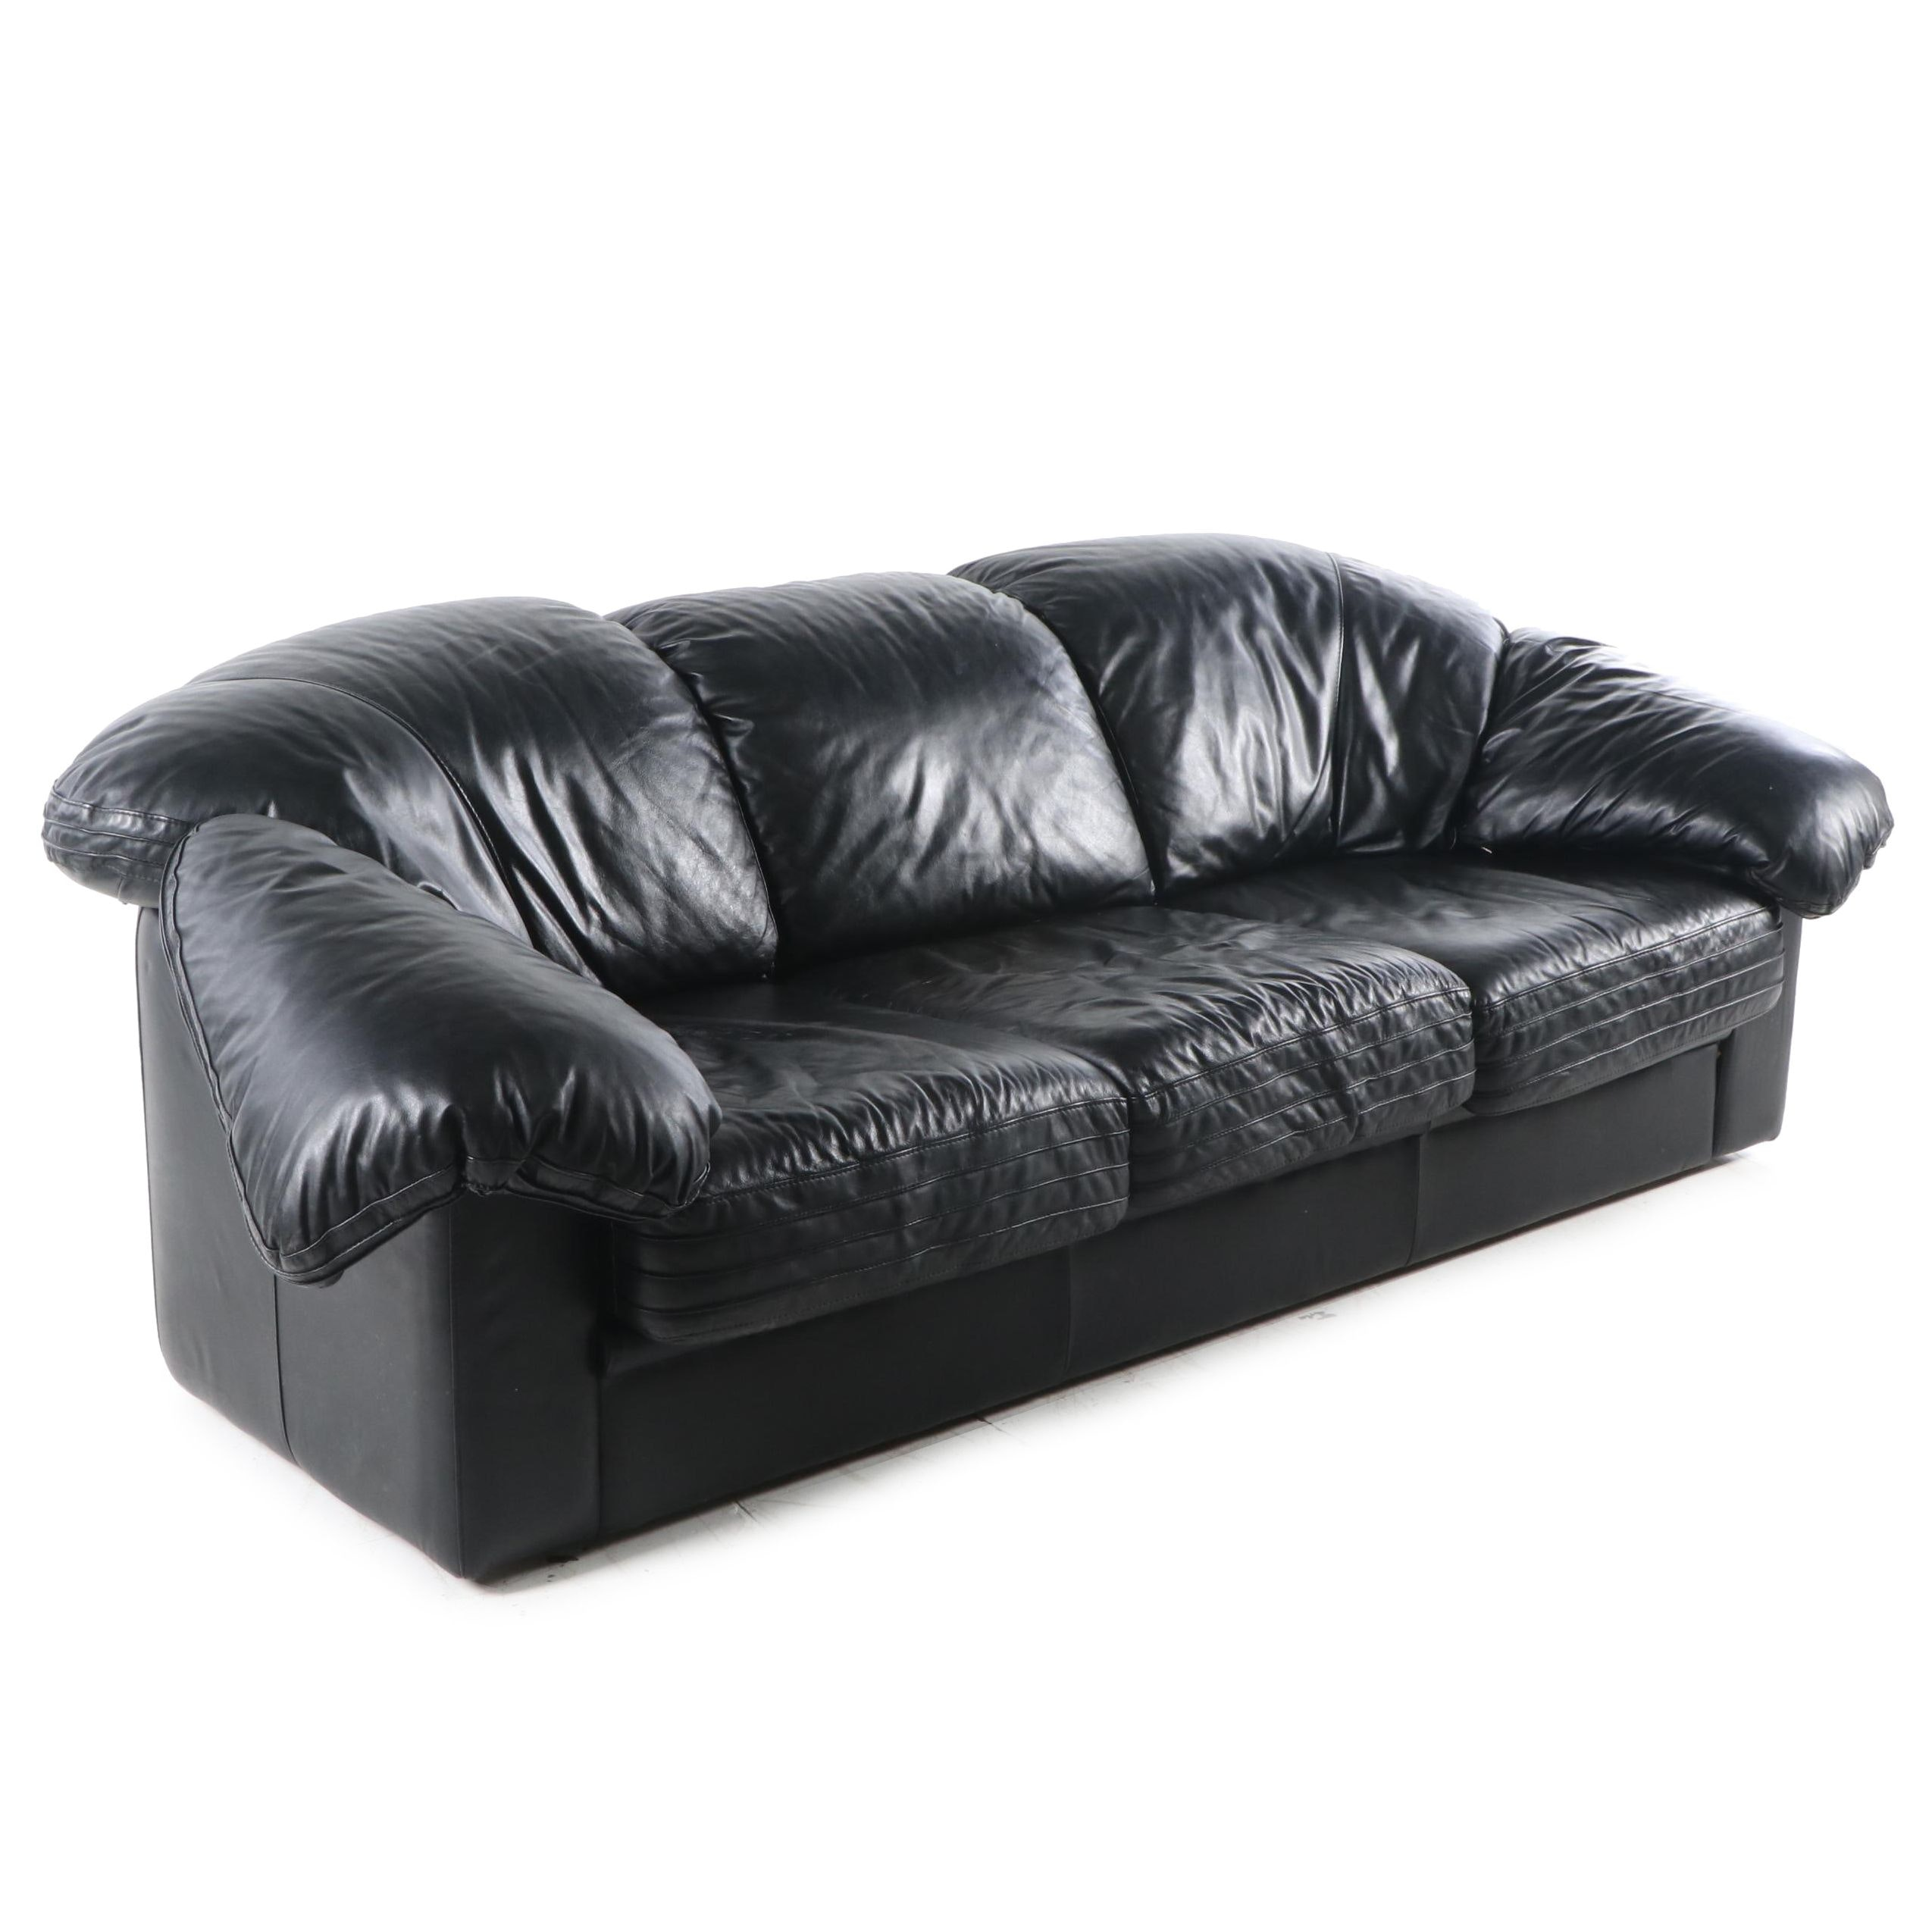 Black Leather Sofa by Natuzzi, 20th Century